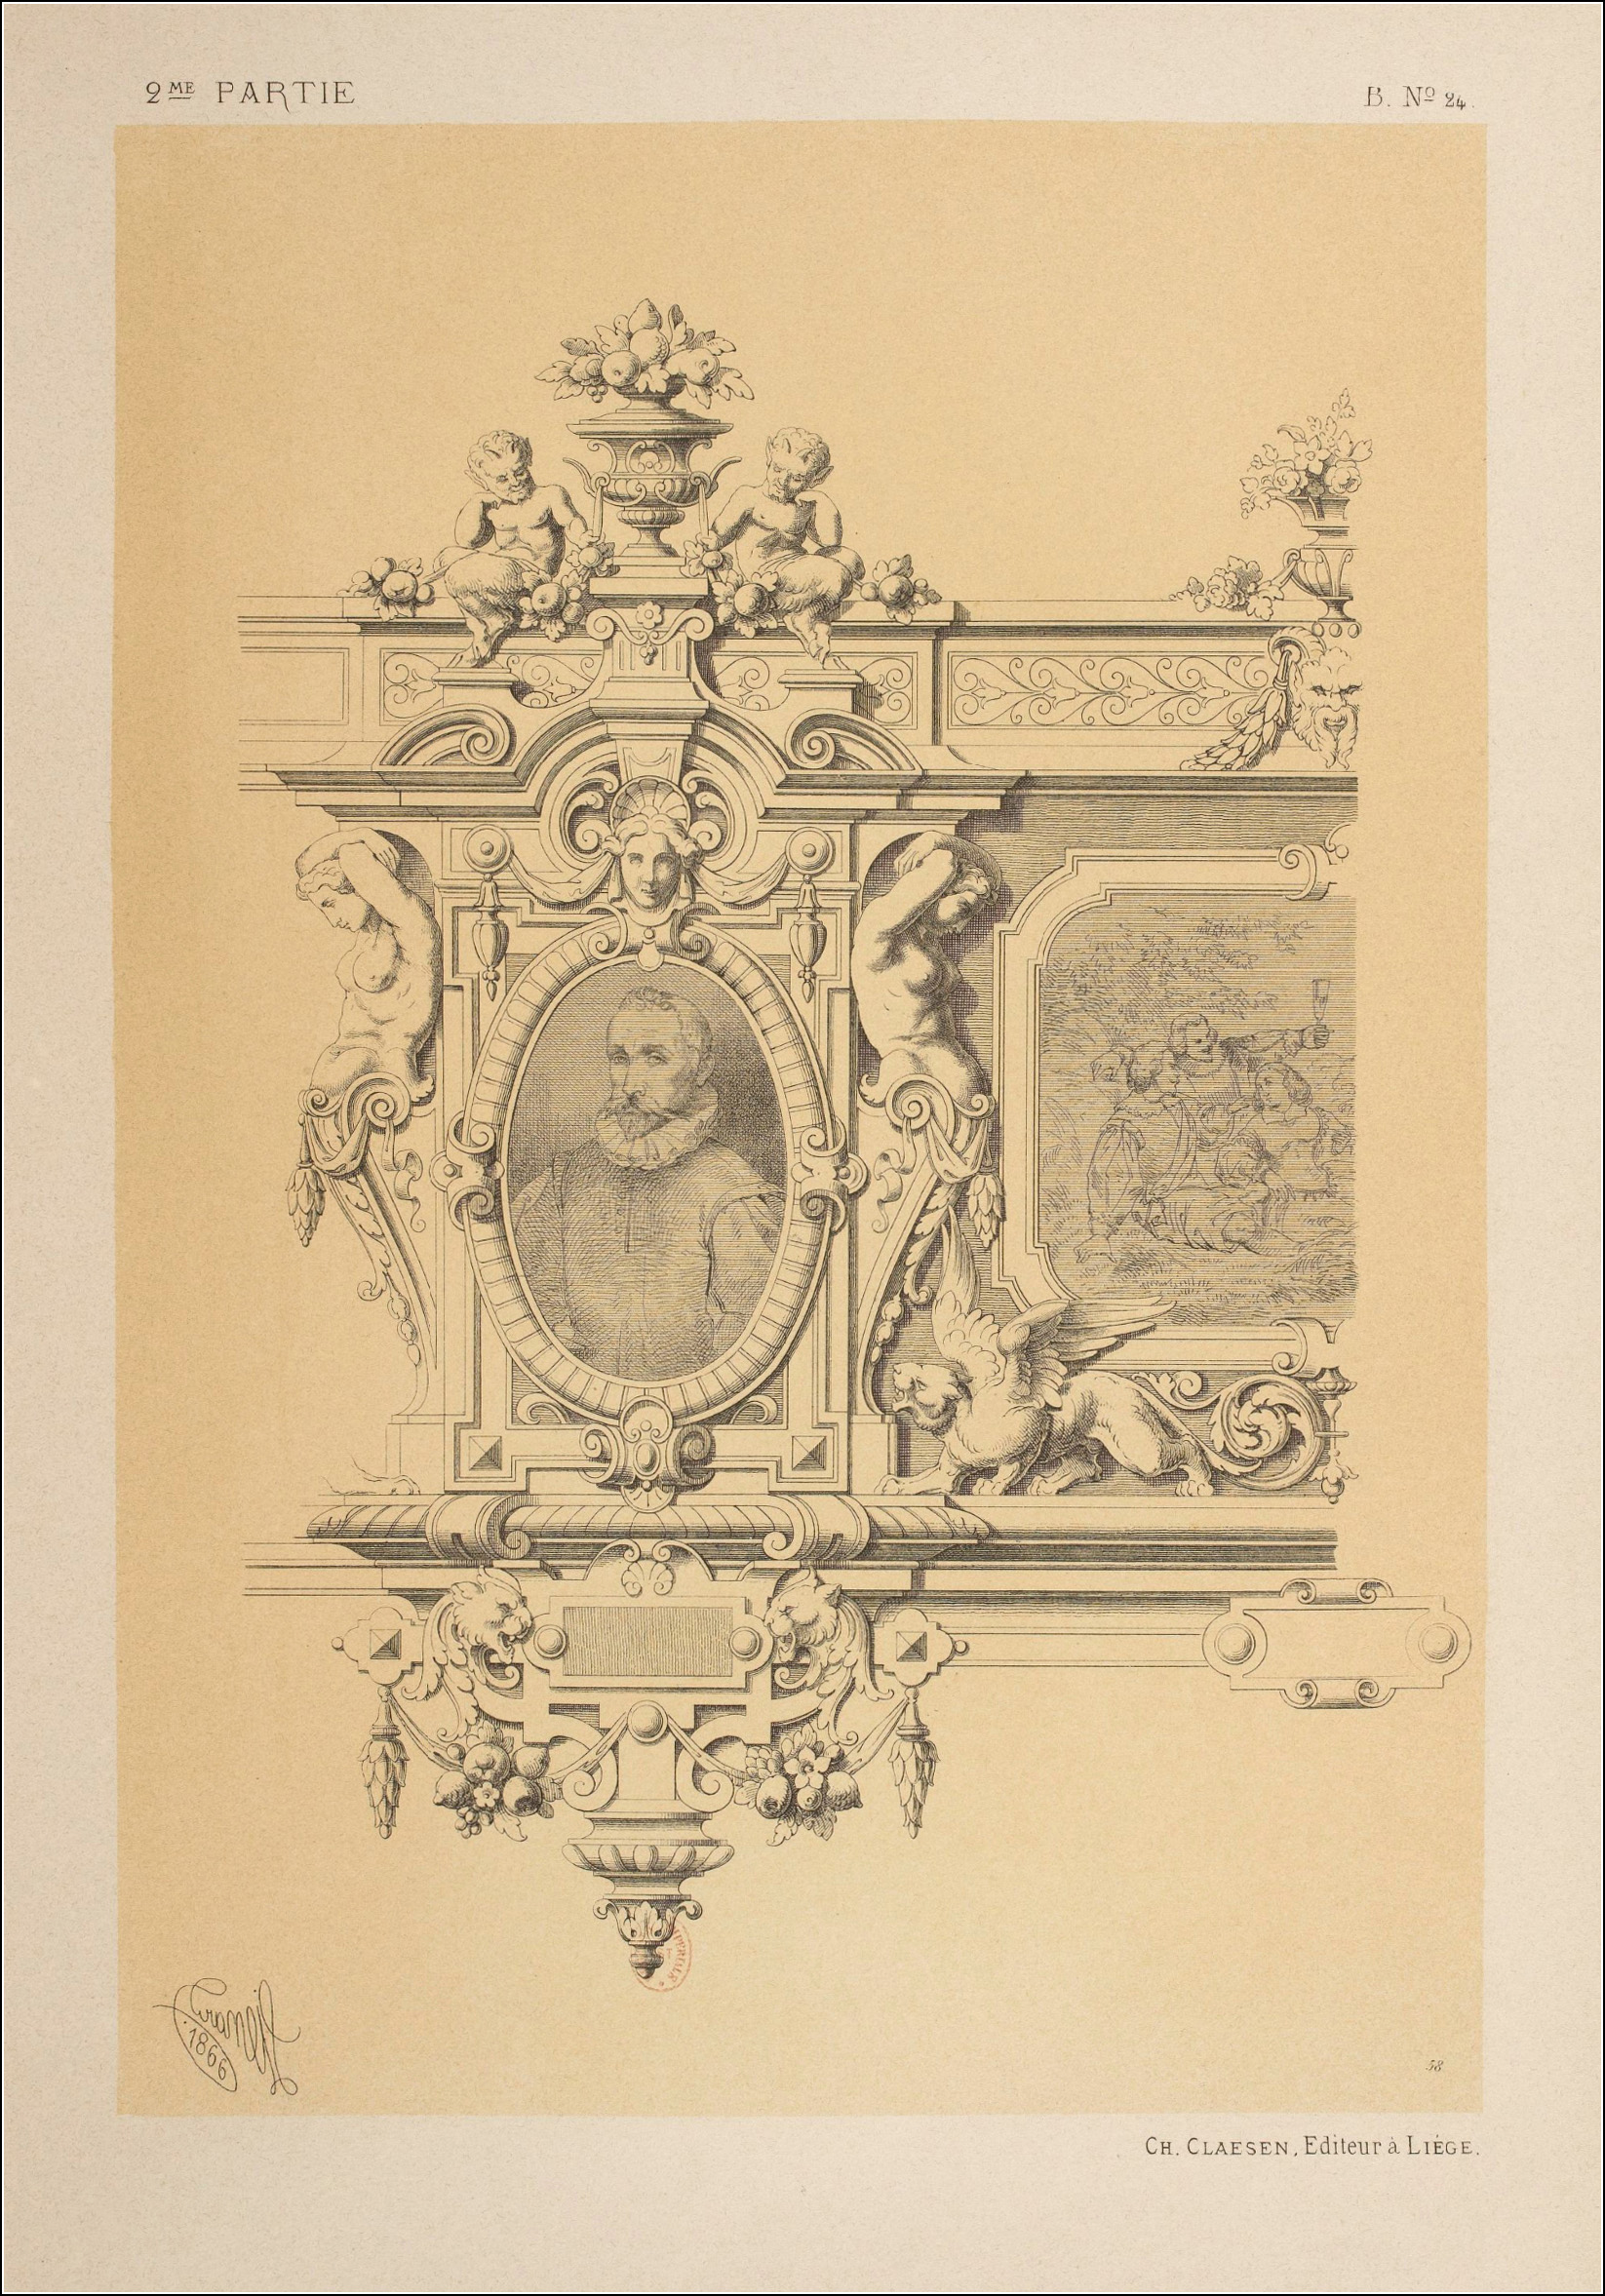 Michel Liénard, Specimens de la décoration